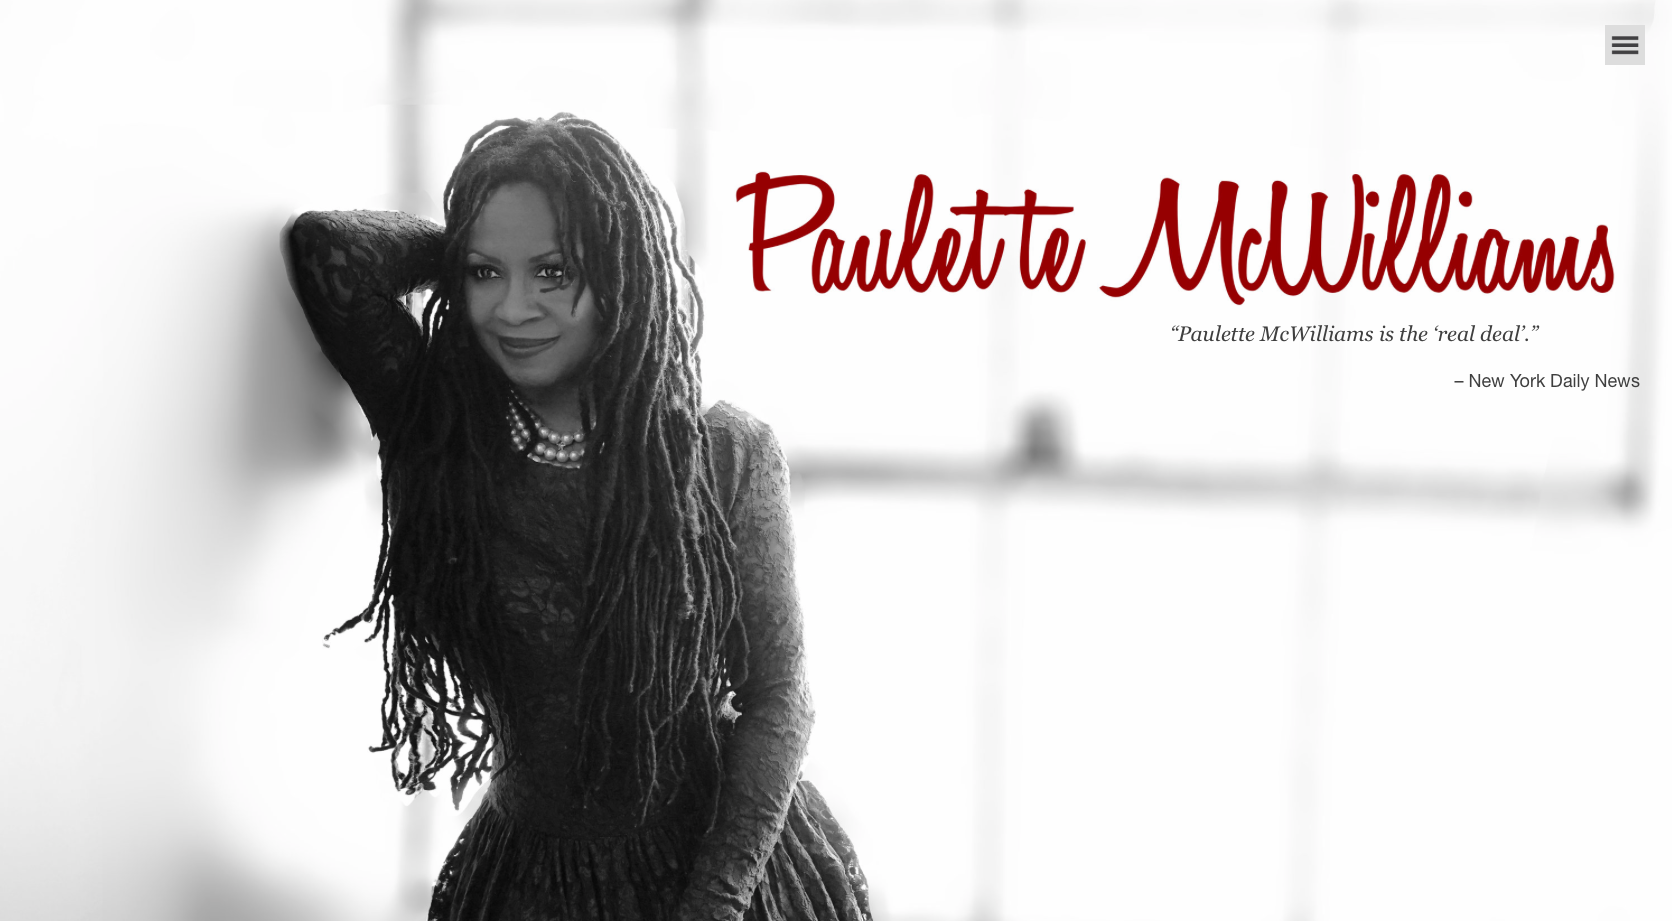 Paulette-McWilliams-Website PAULETTE MCWILLIAMS WEBSITE